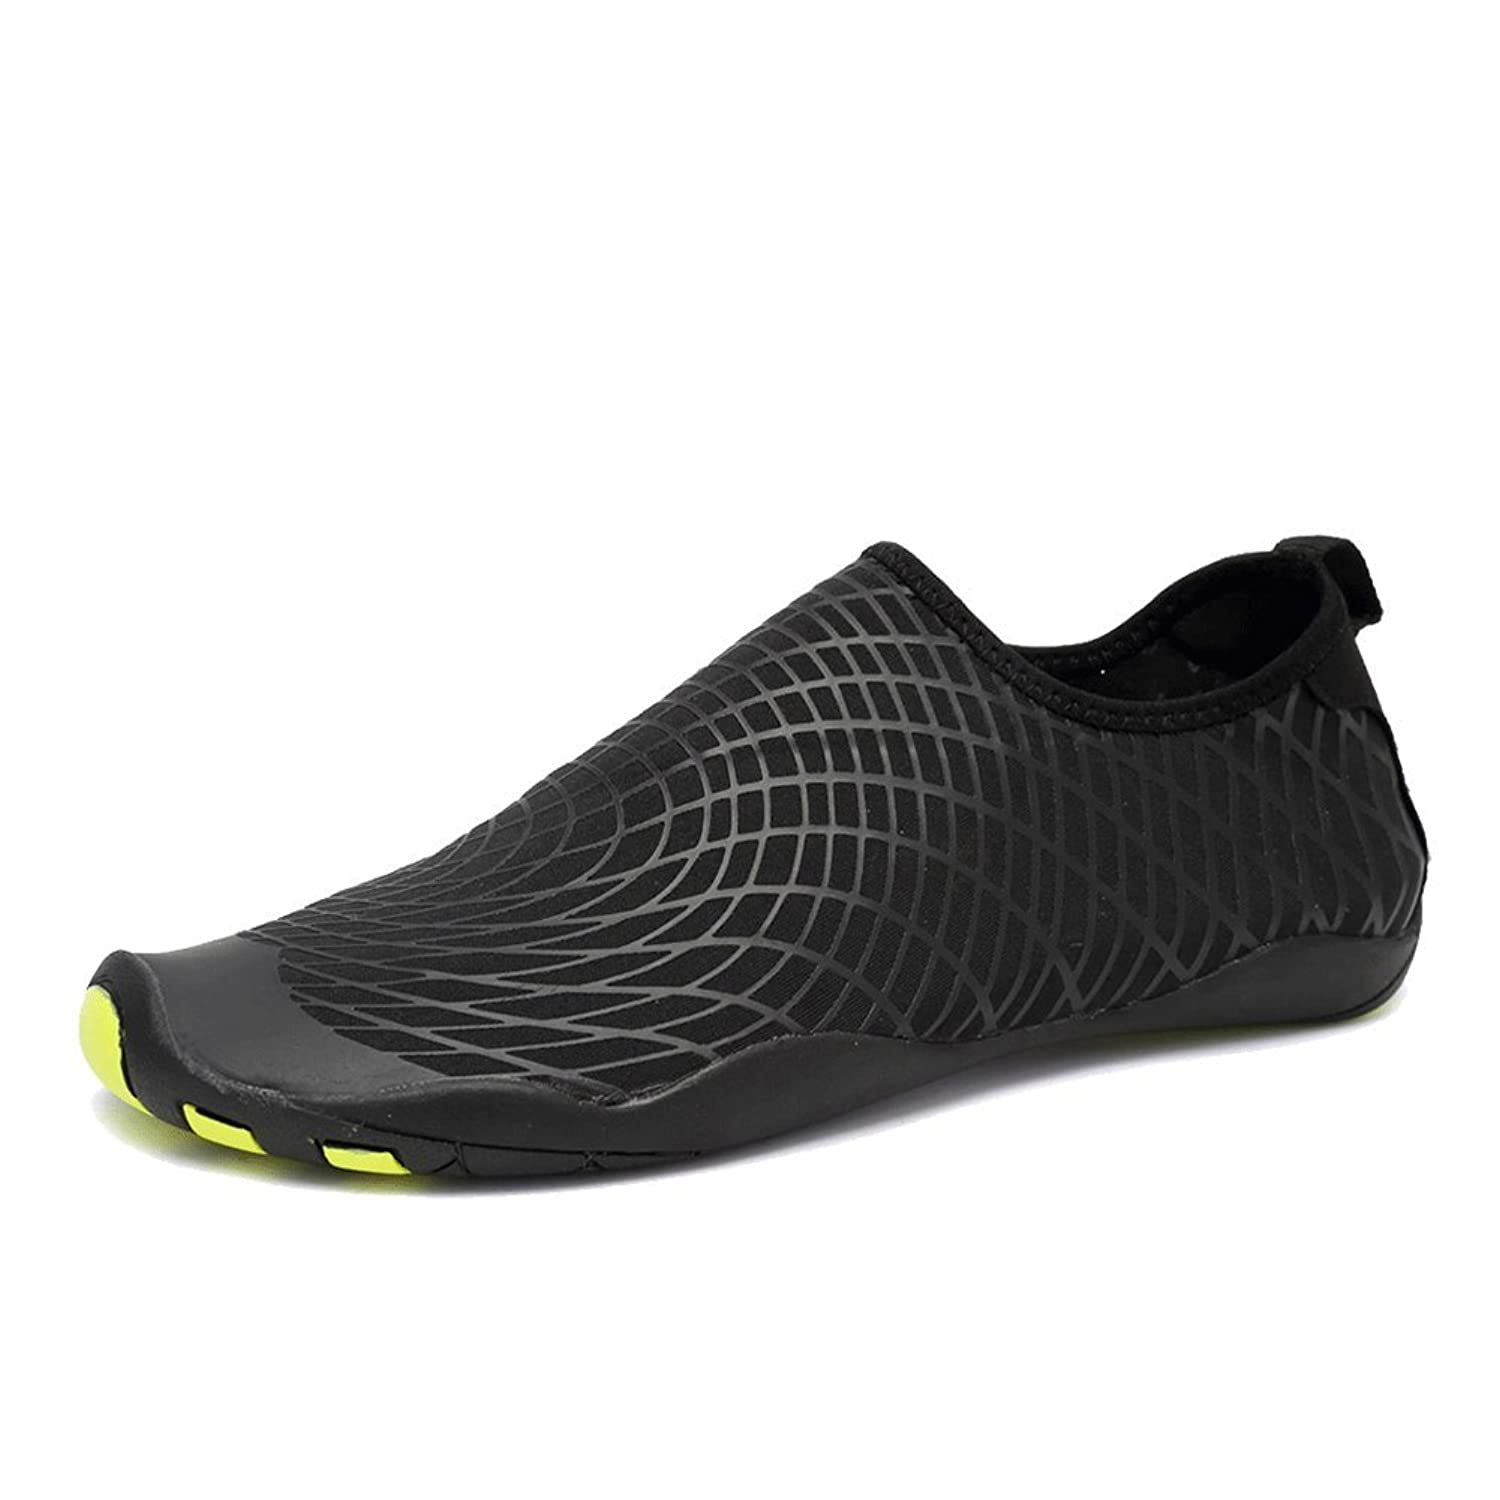 Amazon.com | CIOR Men Women Kid\'s Barefoot Quick-Dry Water Sports Aqua Shoes with 14 Drainage Holes for Swim, Walking, Yoga, Lake, Beach, Garden, Park, Driving, Boating | Water Shoes